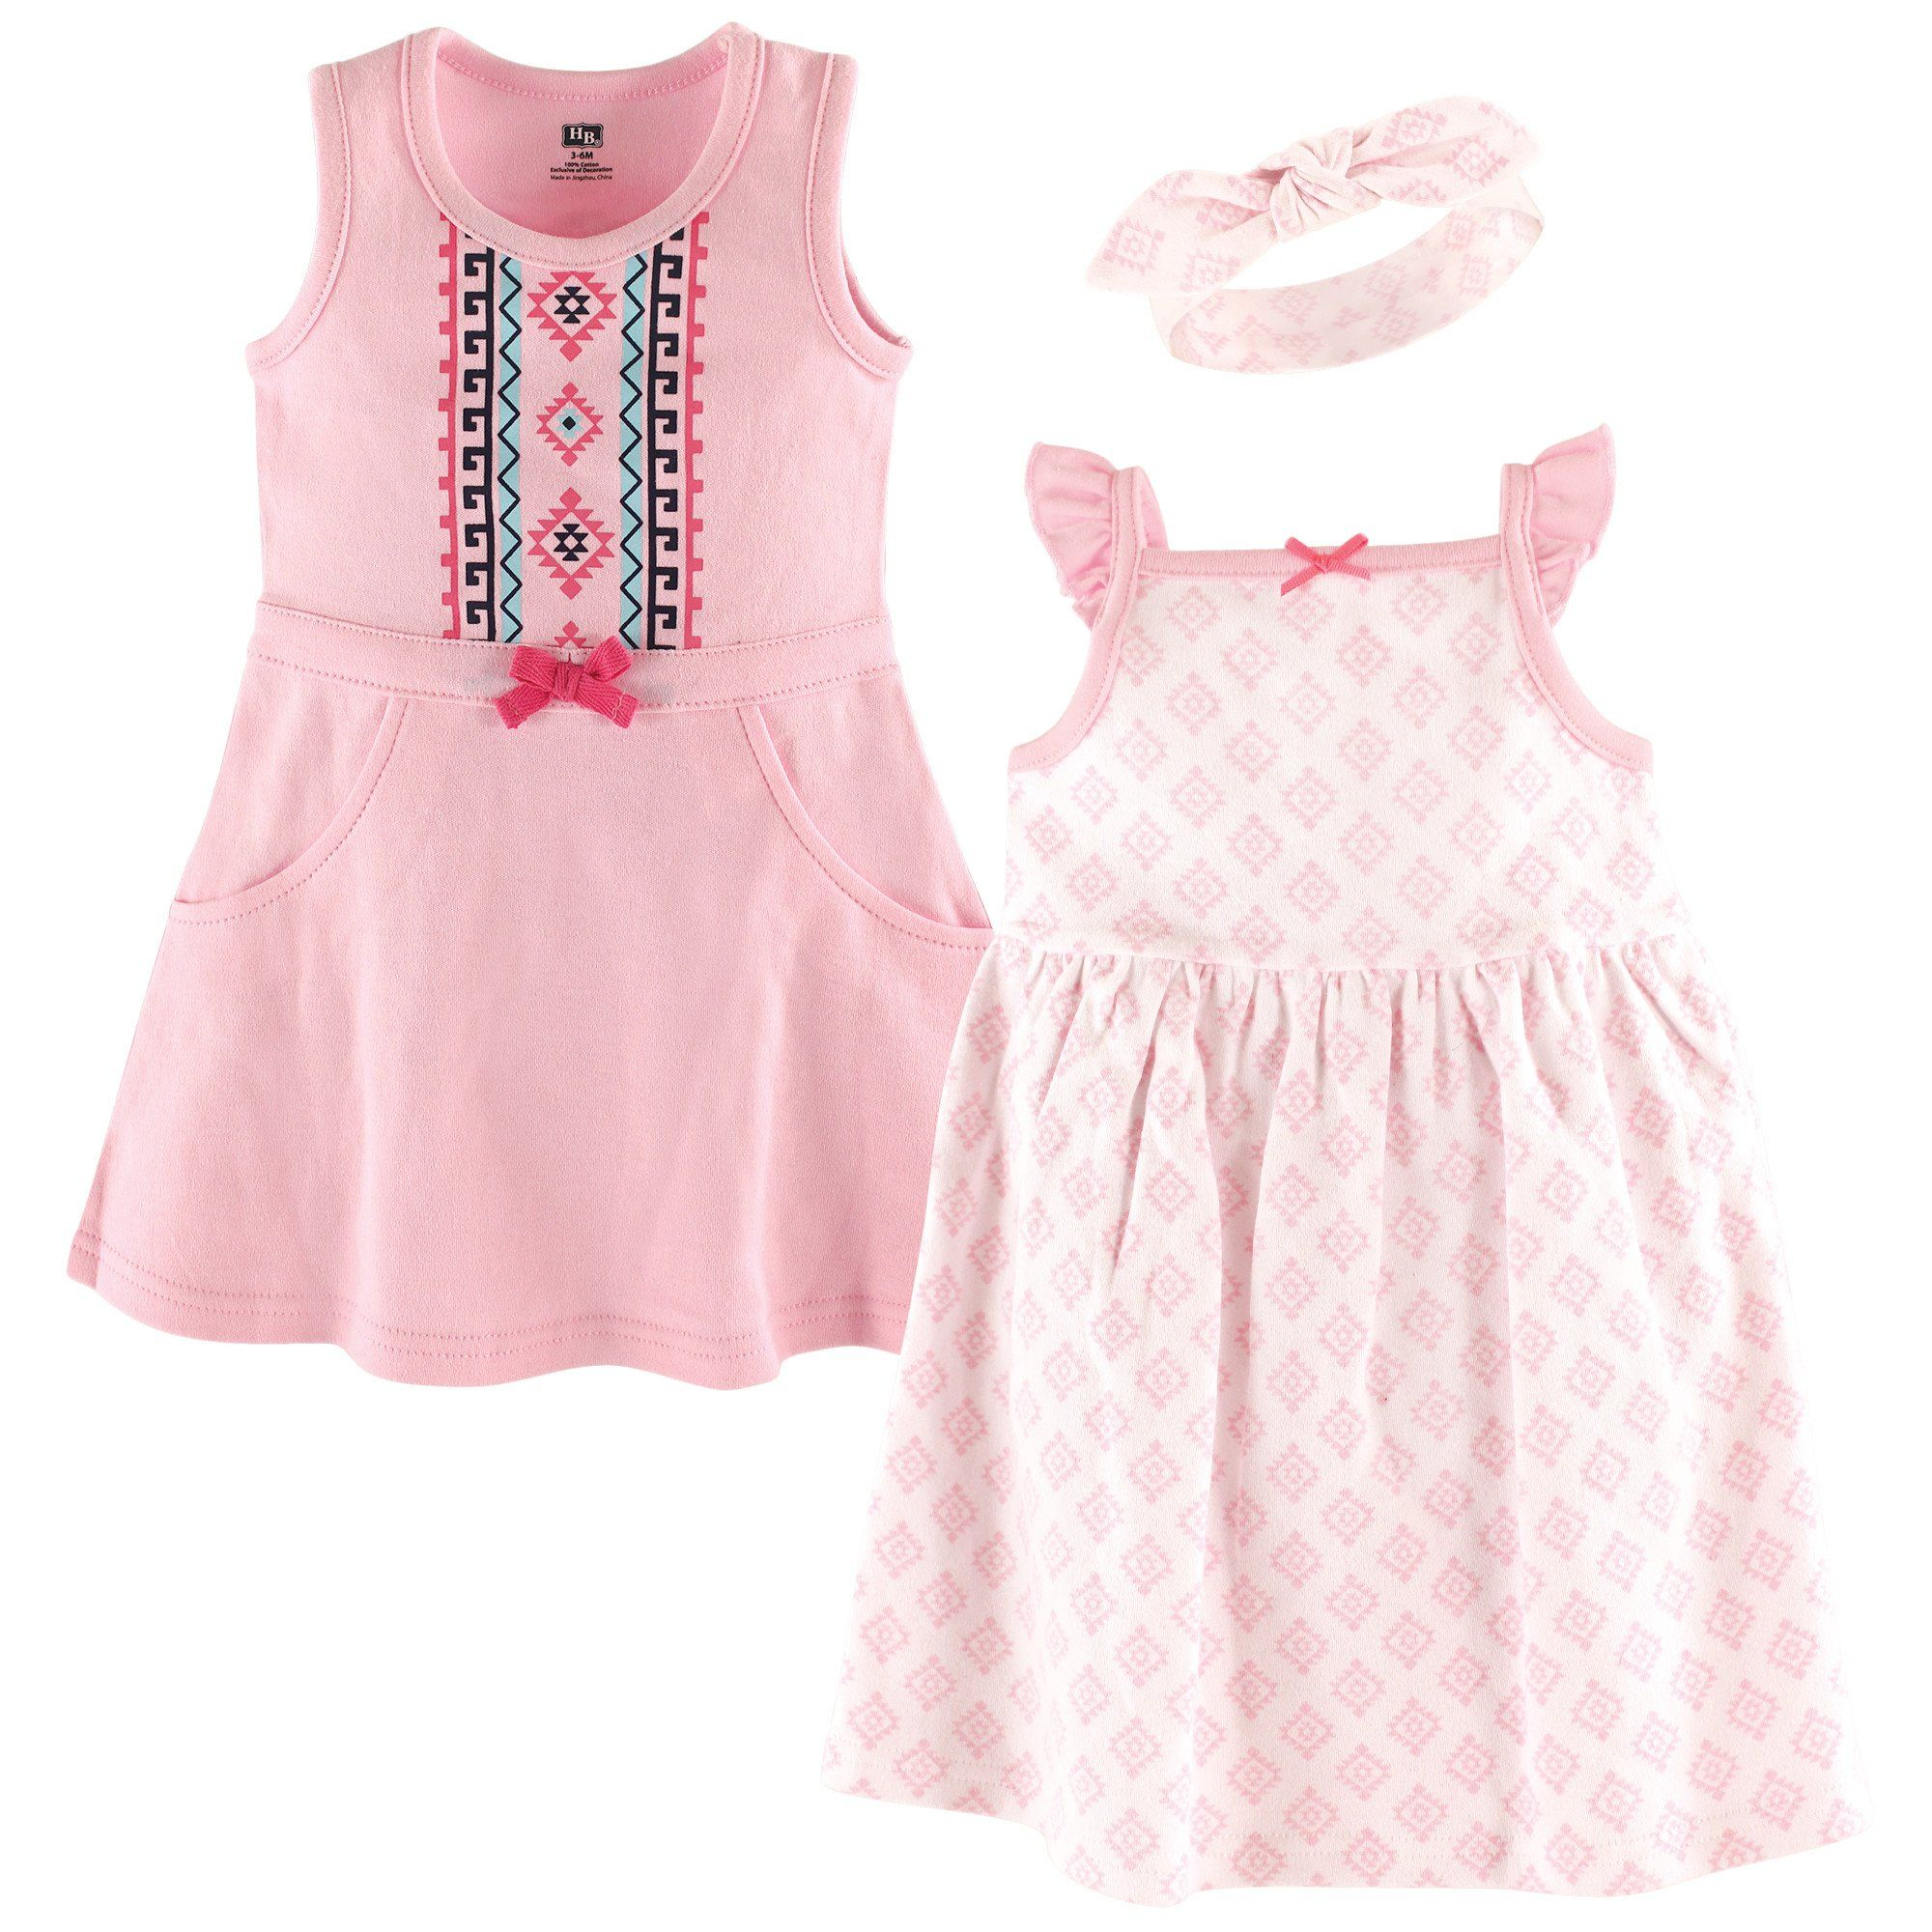 f458ba87b Baby Girl Cotton Dresses - 3 Piece Set   Products   Baby girl ...